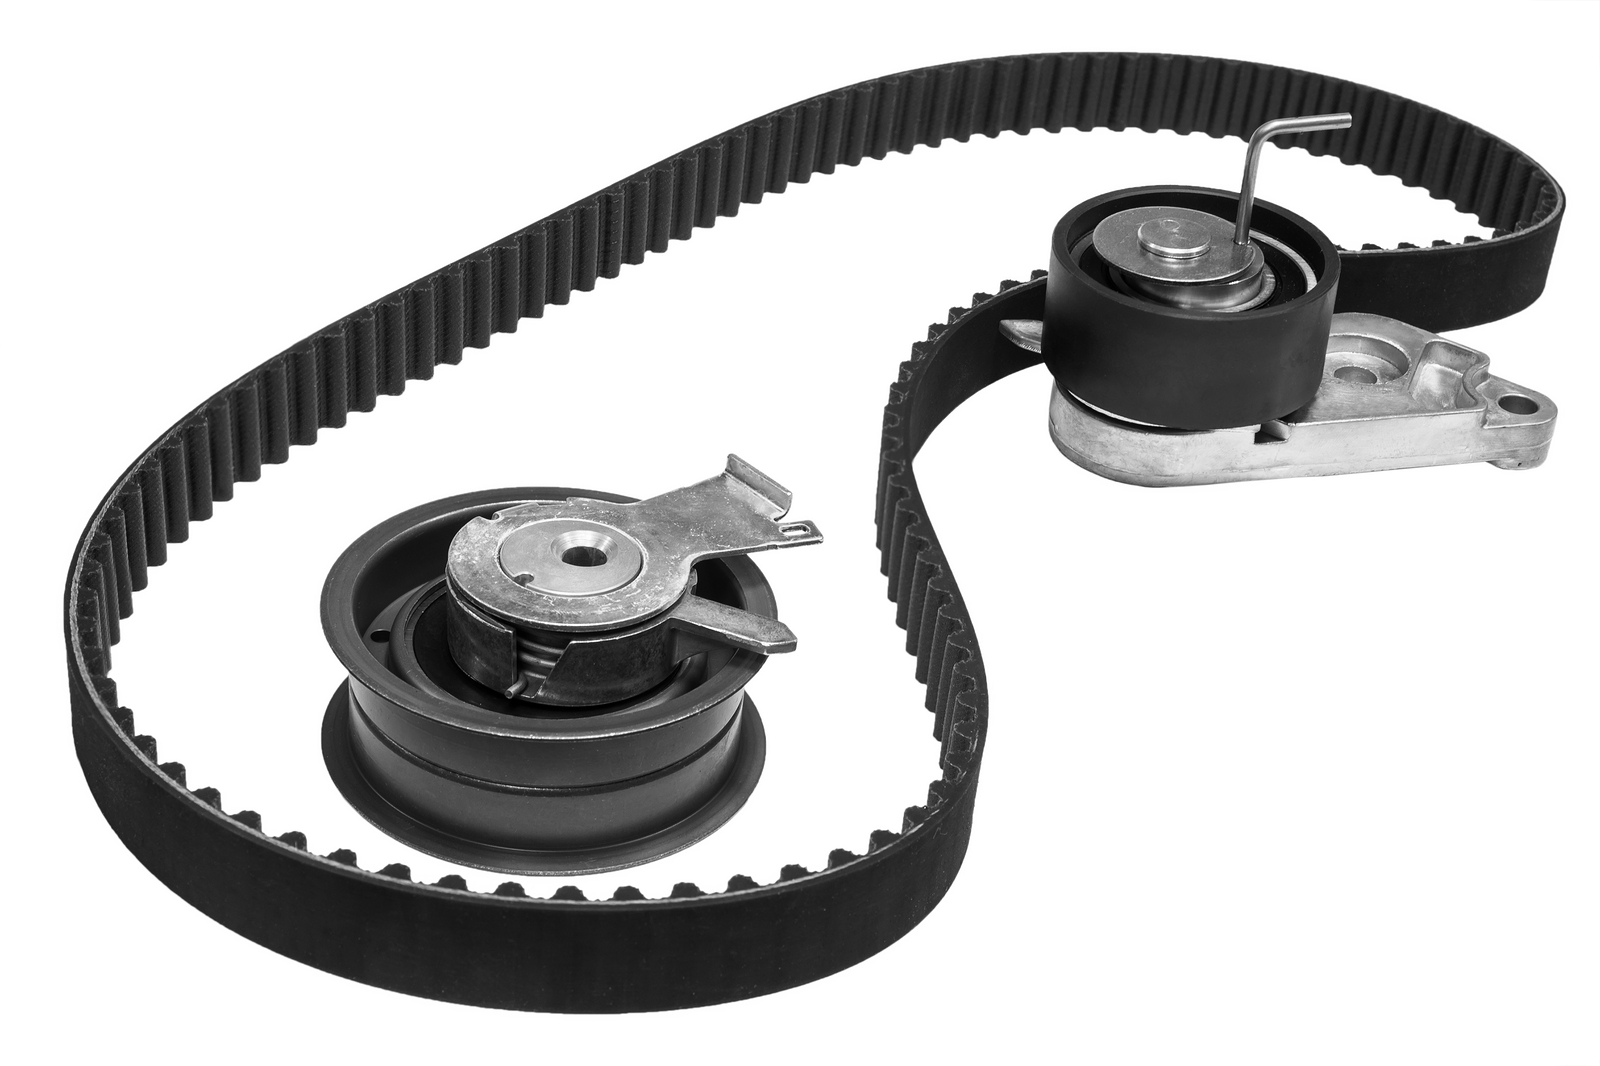 Angel's Transmission & Auto Repair Blog - Timing Belt Replacement